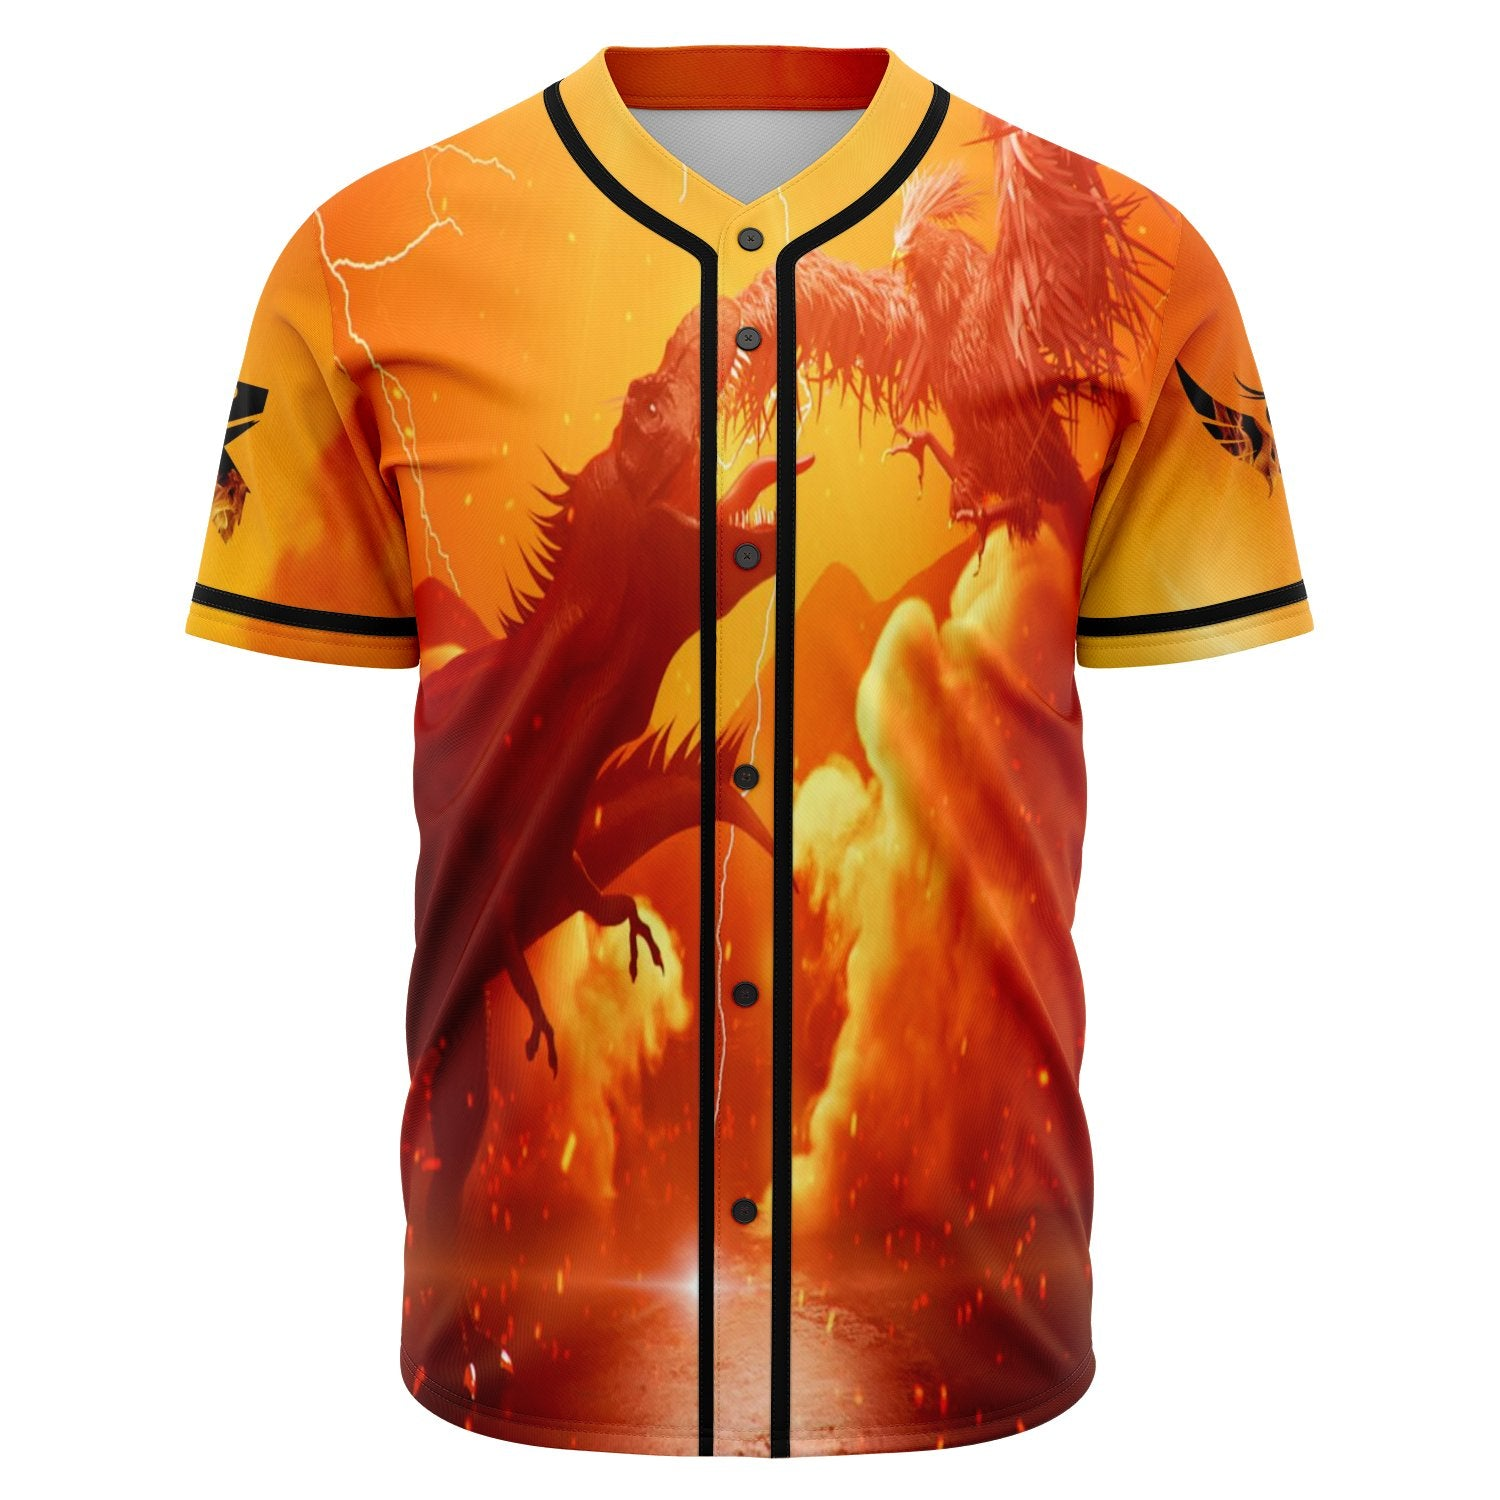 Feel Something Custom Jersey